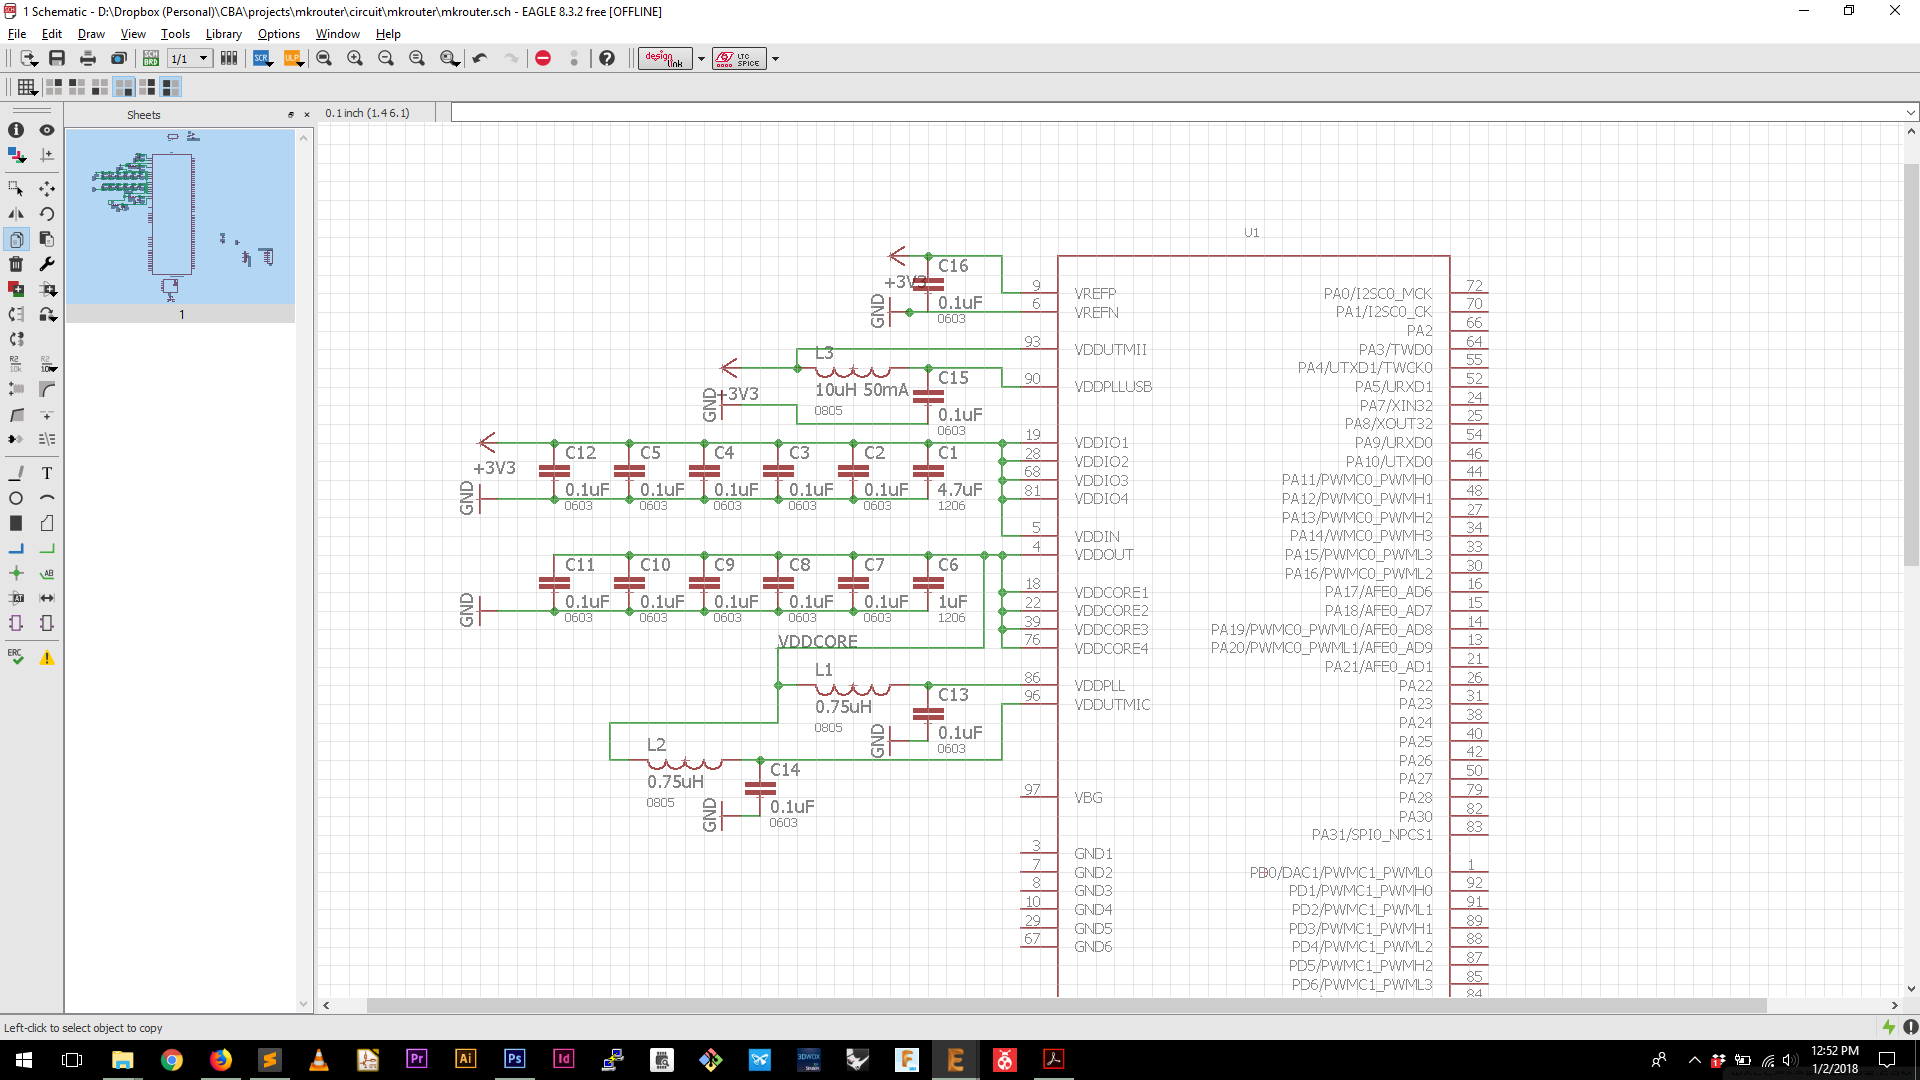 images/schematic-power-eagle.png